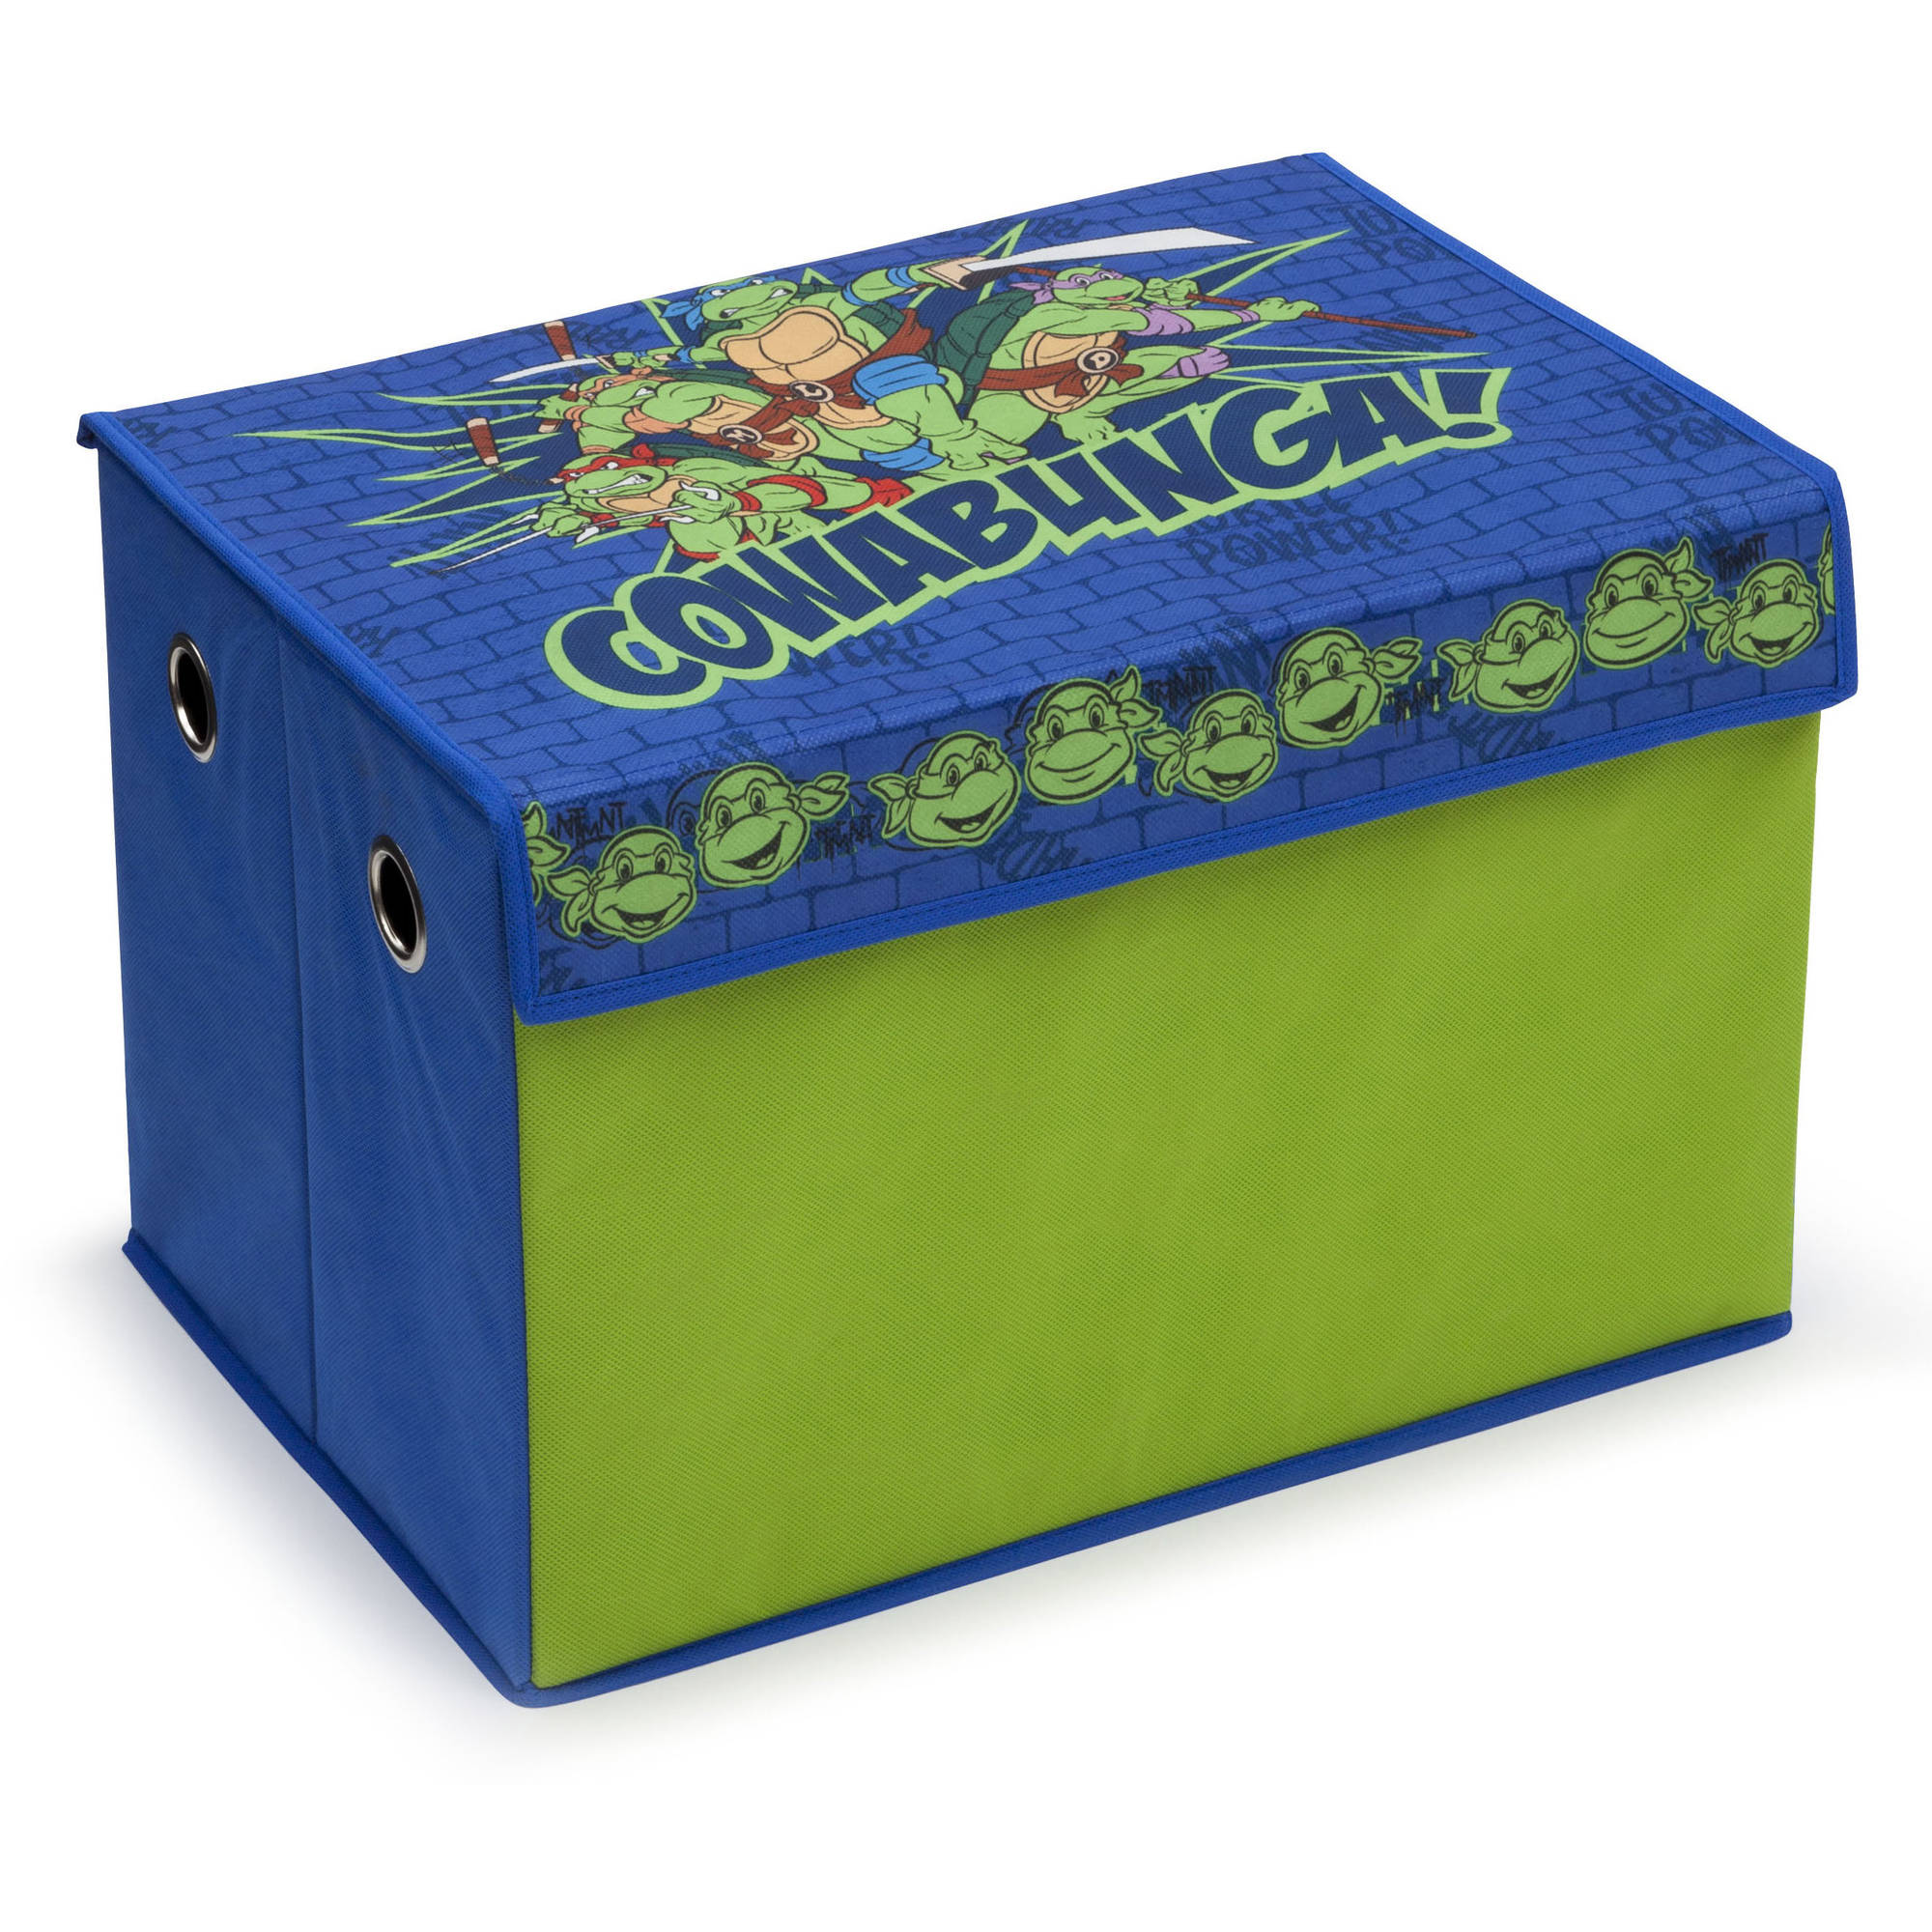 Nickelodeon Teenage Mutant Ninja Turtles Fabric Toy Box